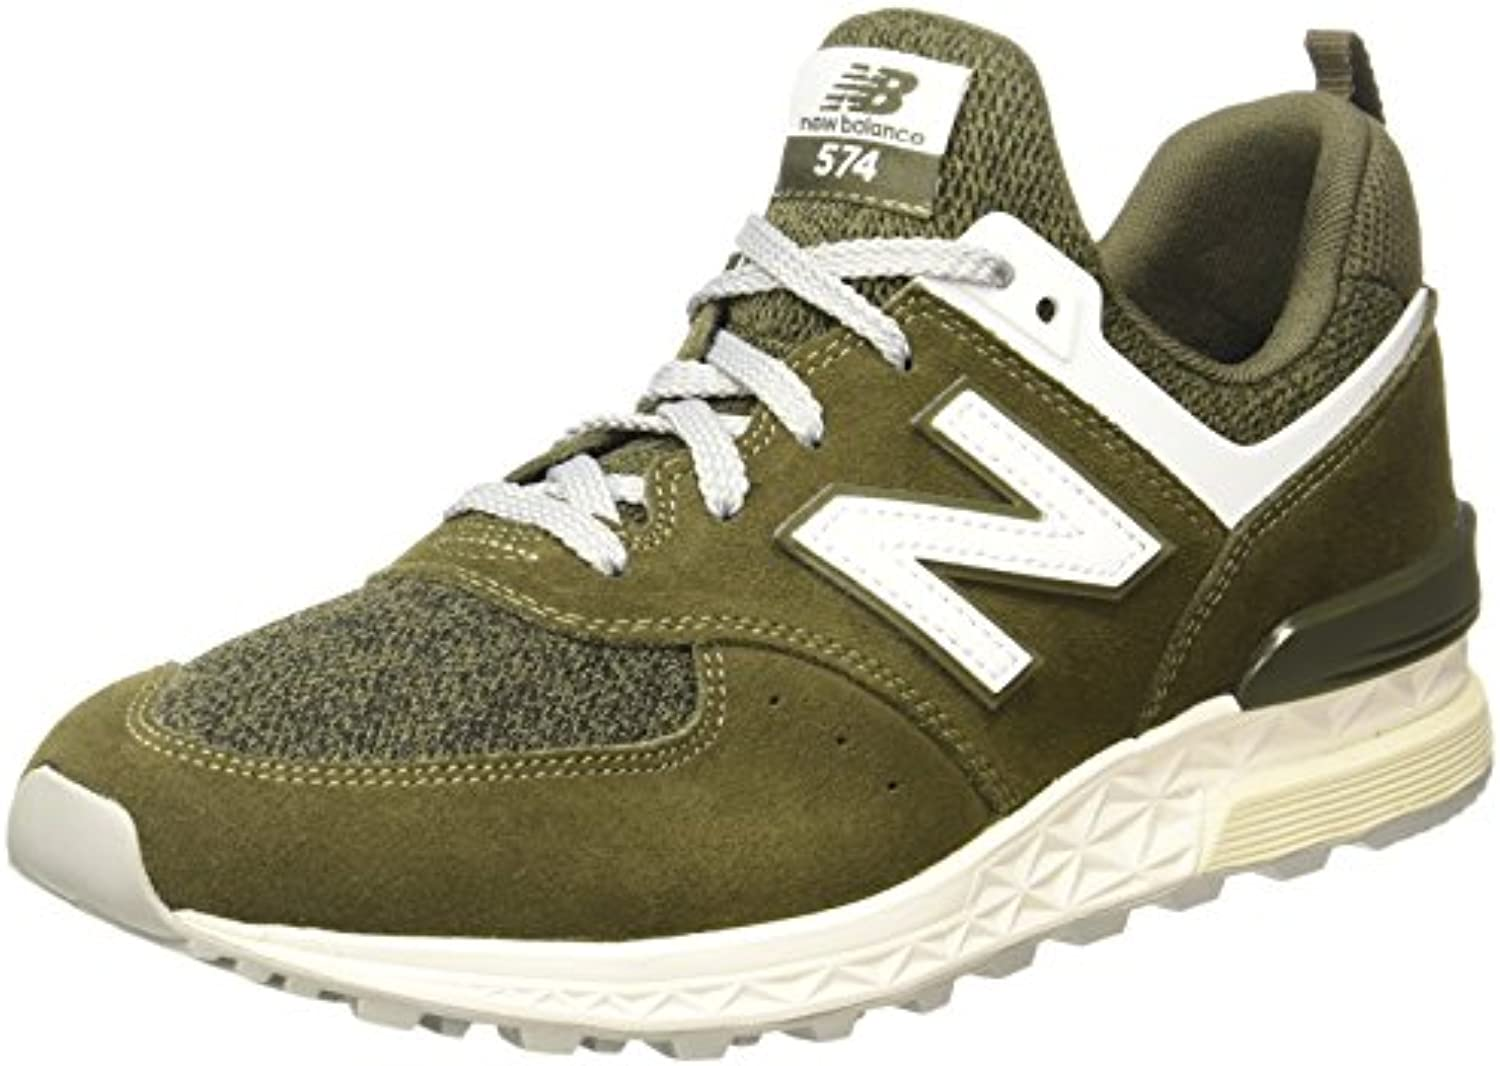 New Balance Men's 574 Sport Olive Sneakers